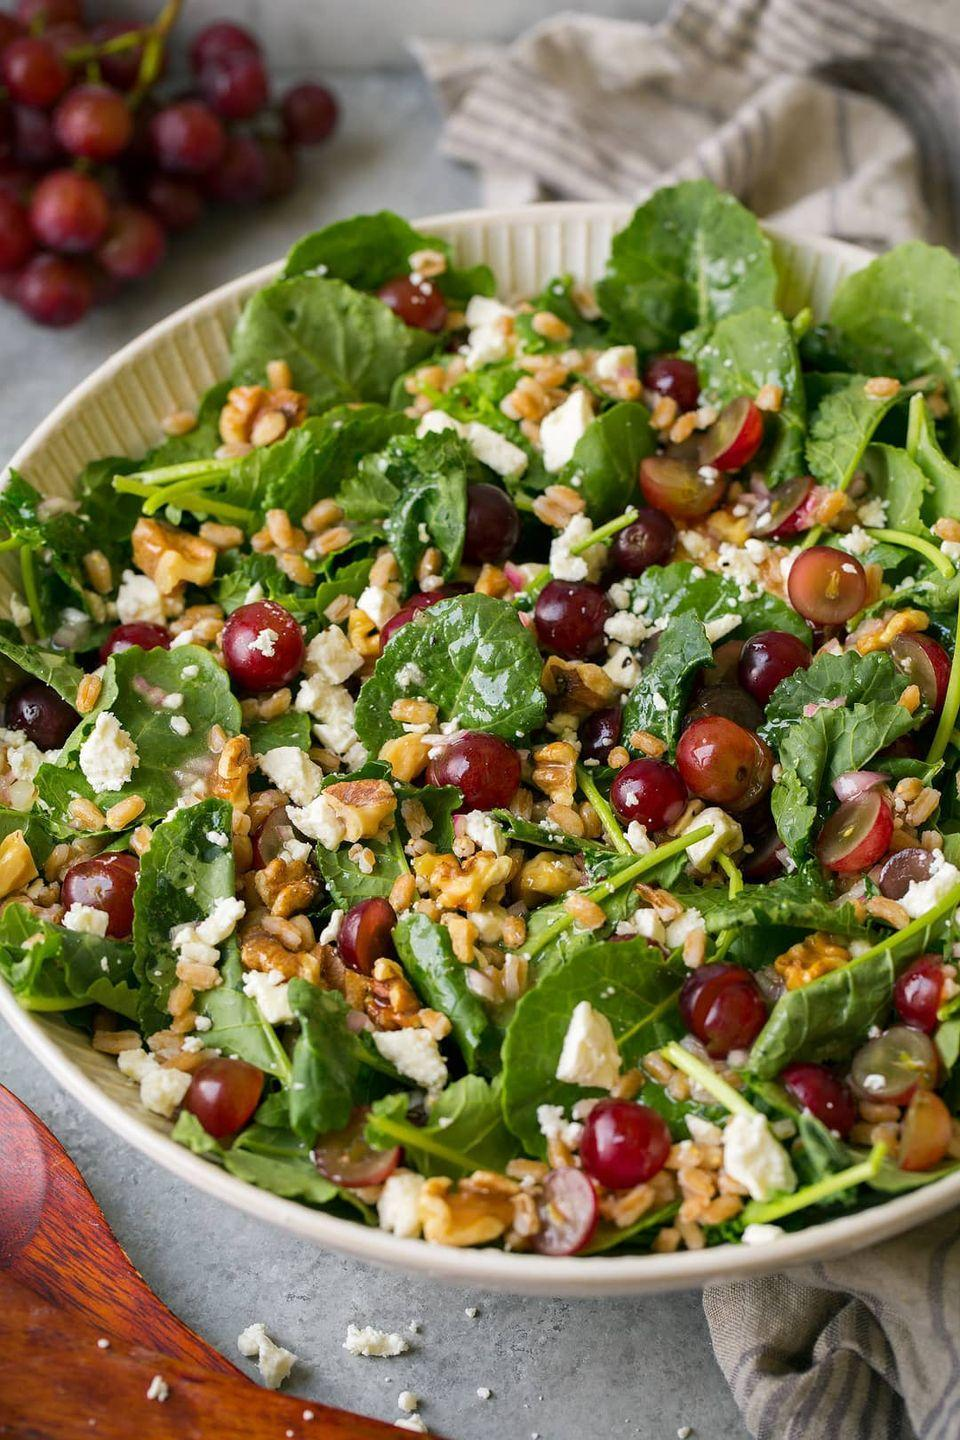 """<p>You can't go wrong by adding feta to a salad, especially when combining it with farro and kale.</p><p><strong>Get the recipe at <a href=""""https://www.cookingclassy.com/kale-grape-farro-salad/"""" rel=""""nofollow noopener"""" target=""""_blank"""" data-ylk=""""slk:Cooking Classy"""" class=""""link rapid-noclick-resp"""">Cooking Classy</a>.</strong> </p>"""